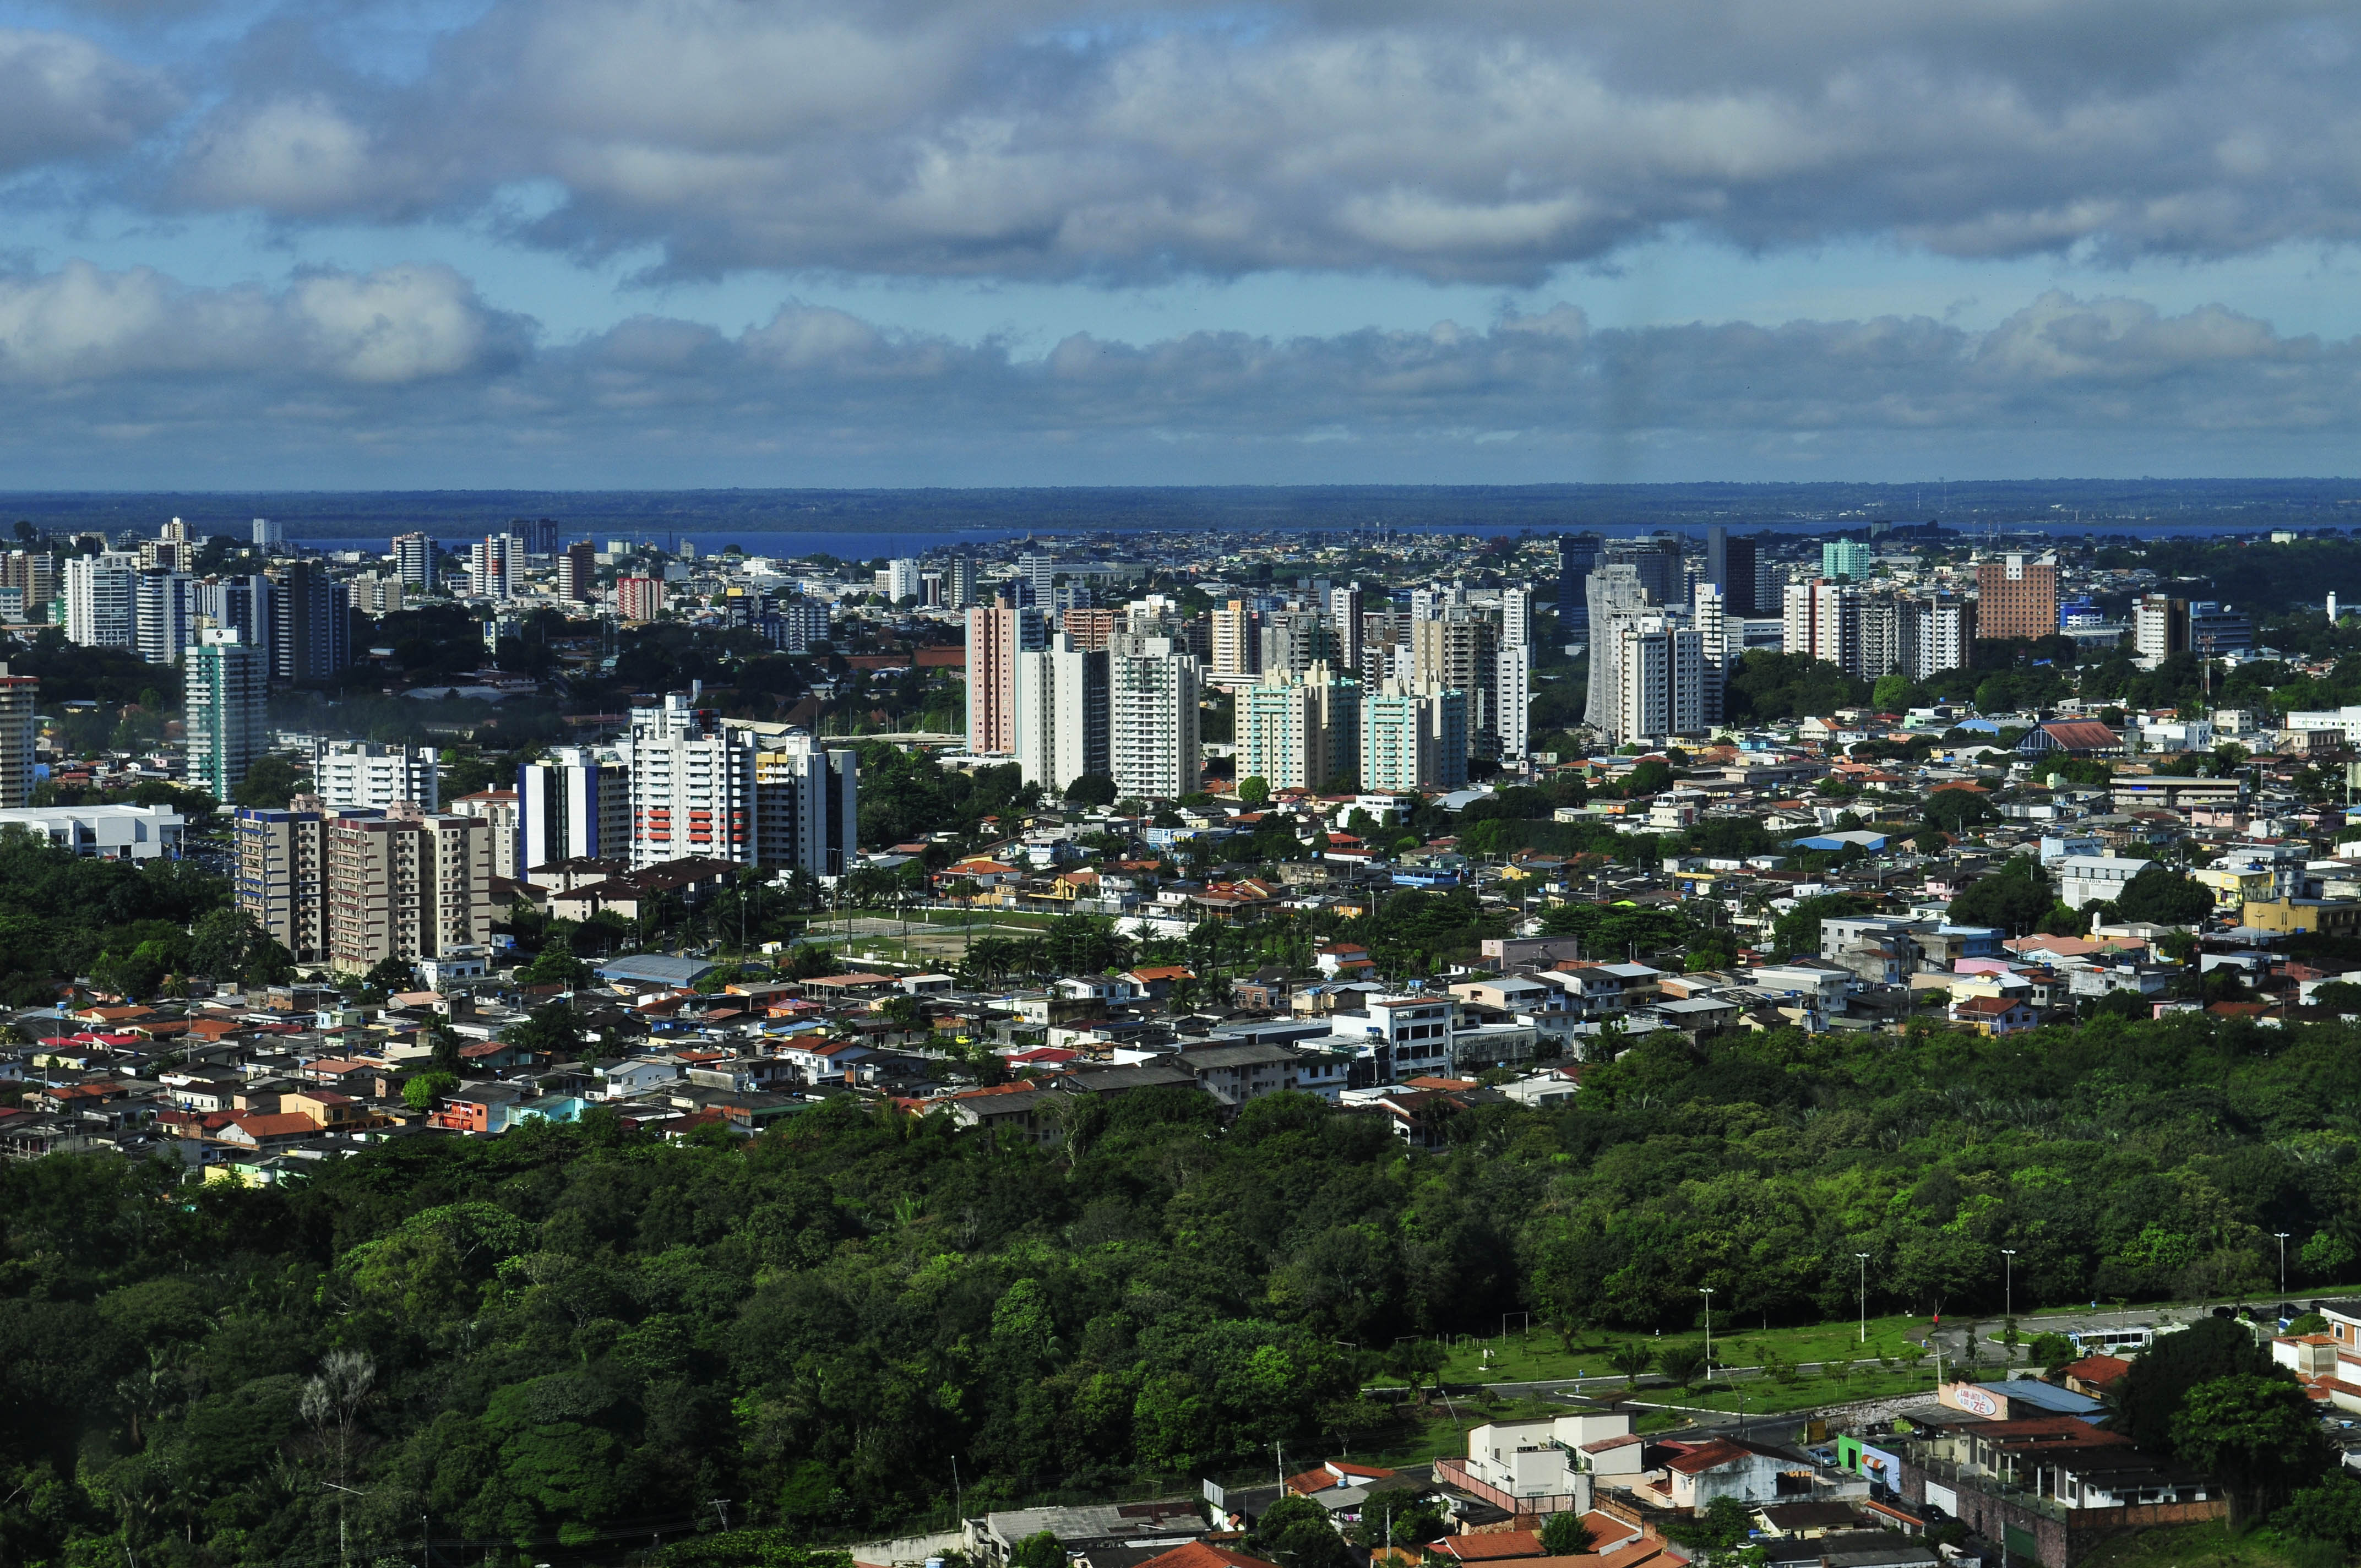 Google Map of Manaus, Brazil - Nations Online Project